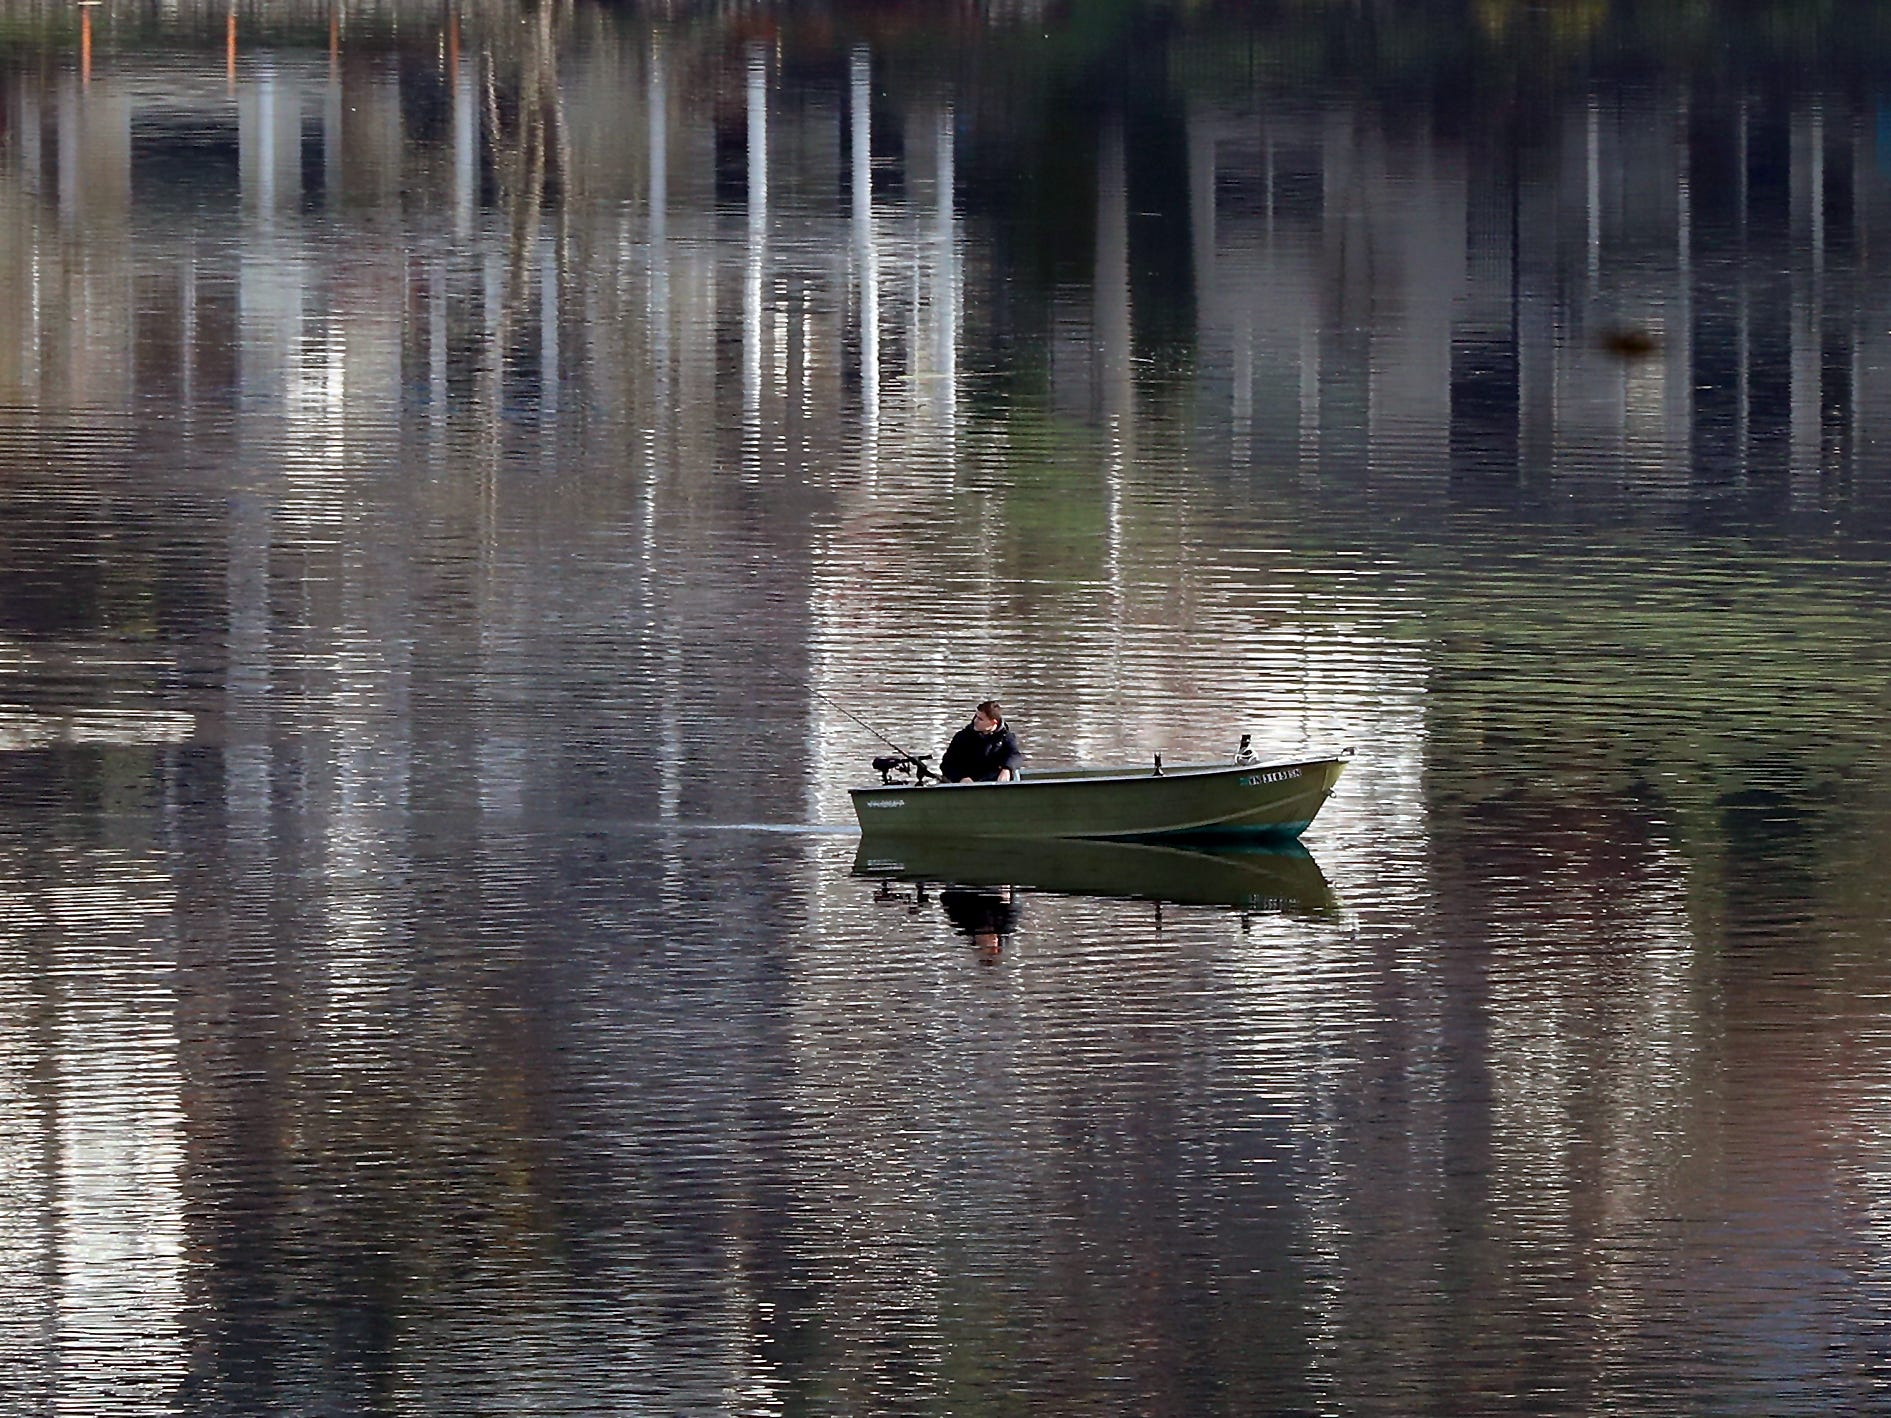 An angler in a small fishing boat moves through the reflections on Kitsap Lake in Bremerton on Tuesday, January 15, 2019.